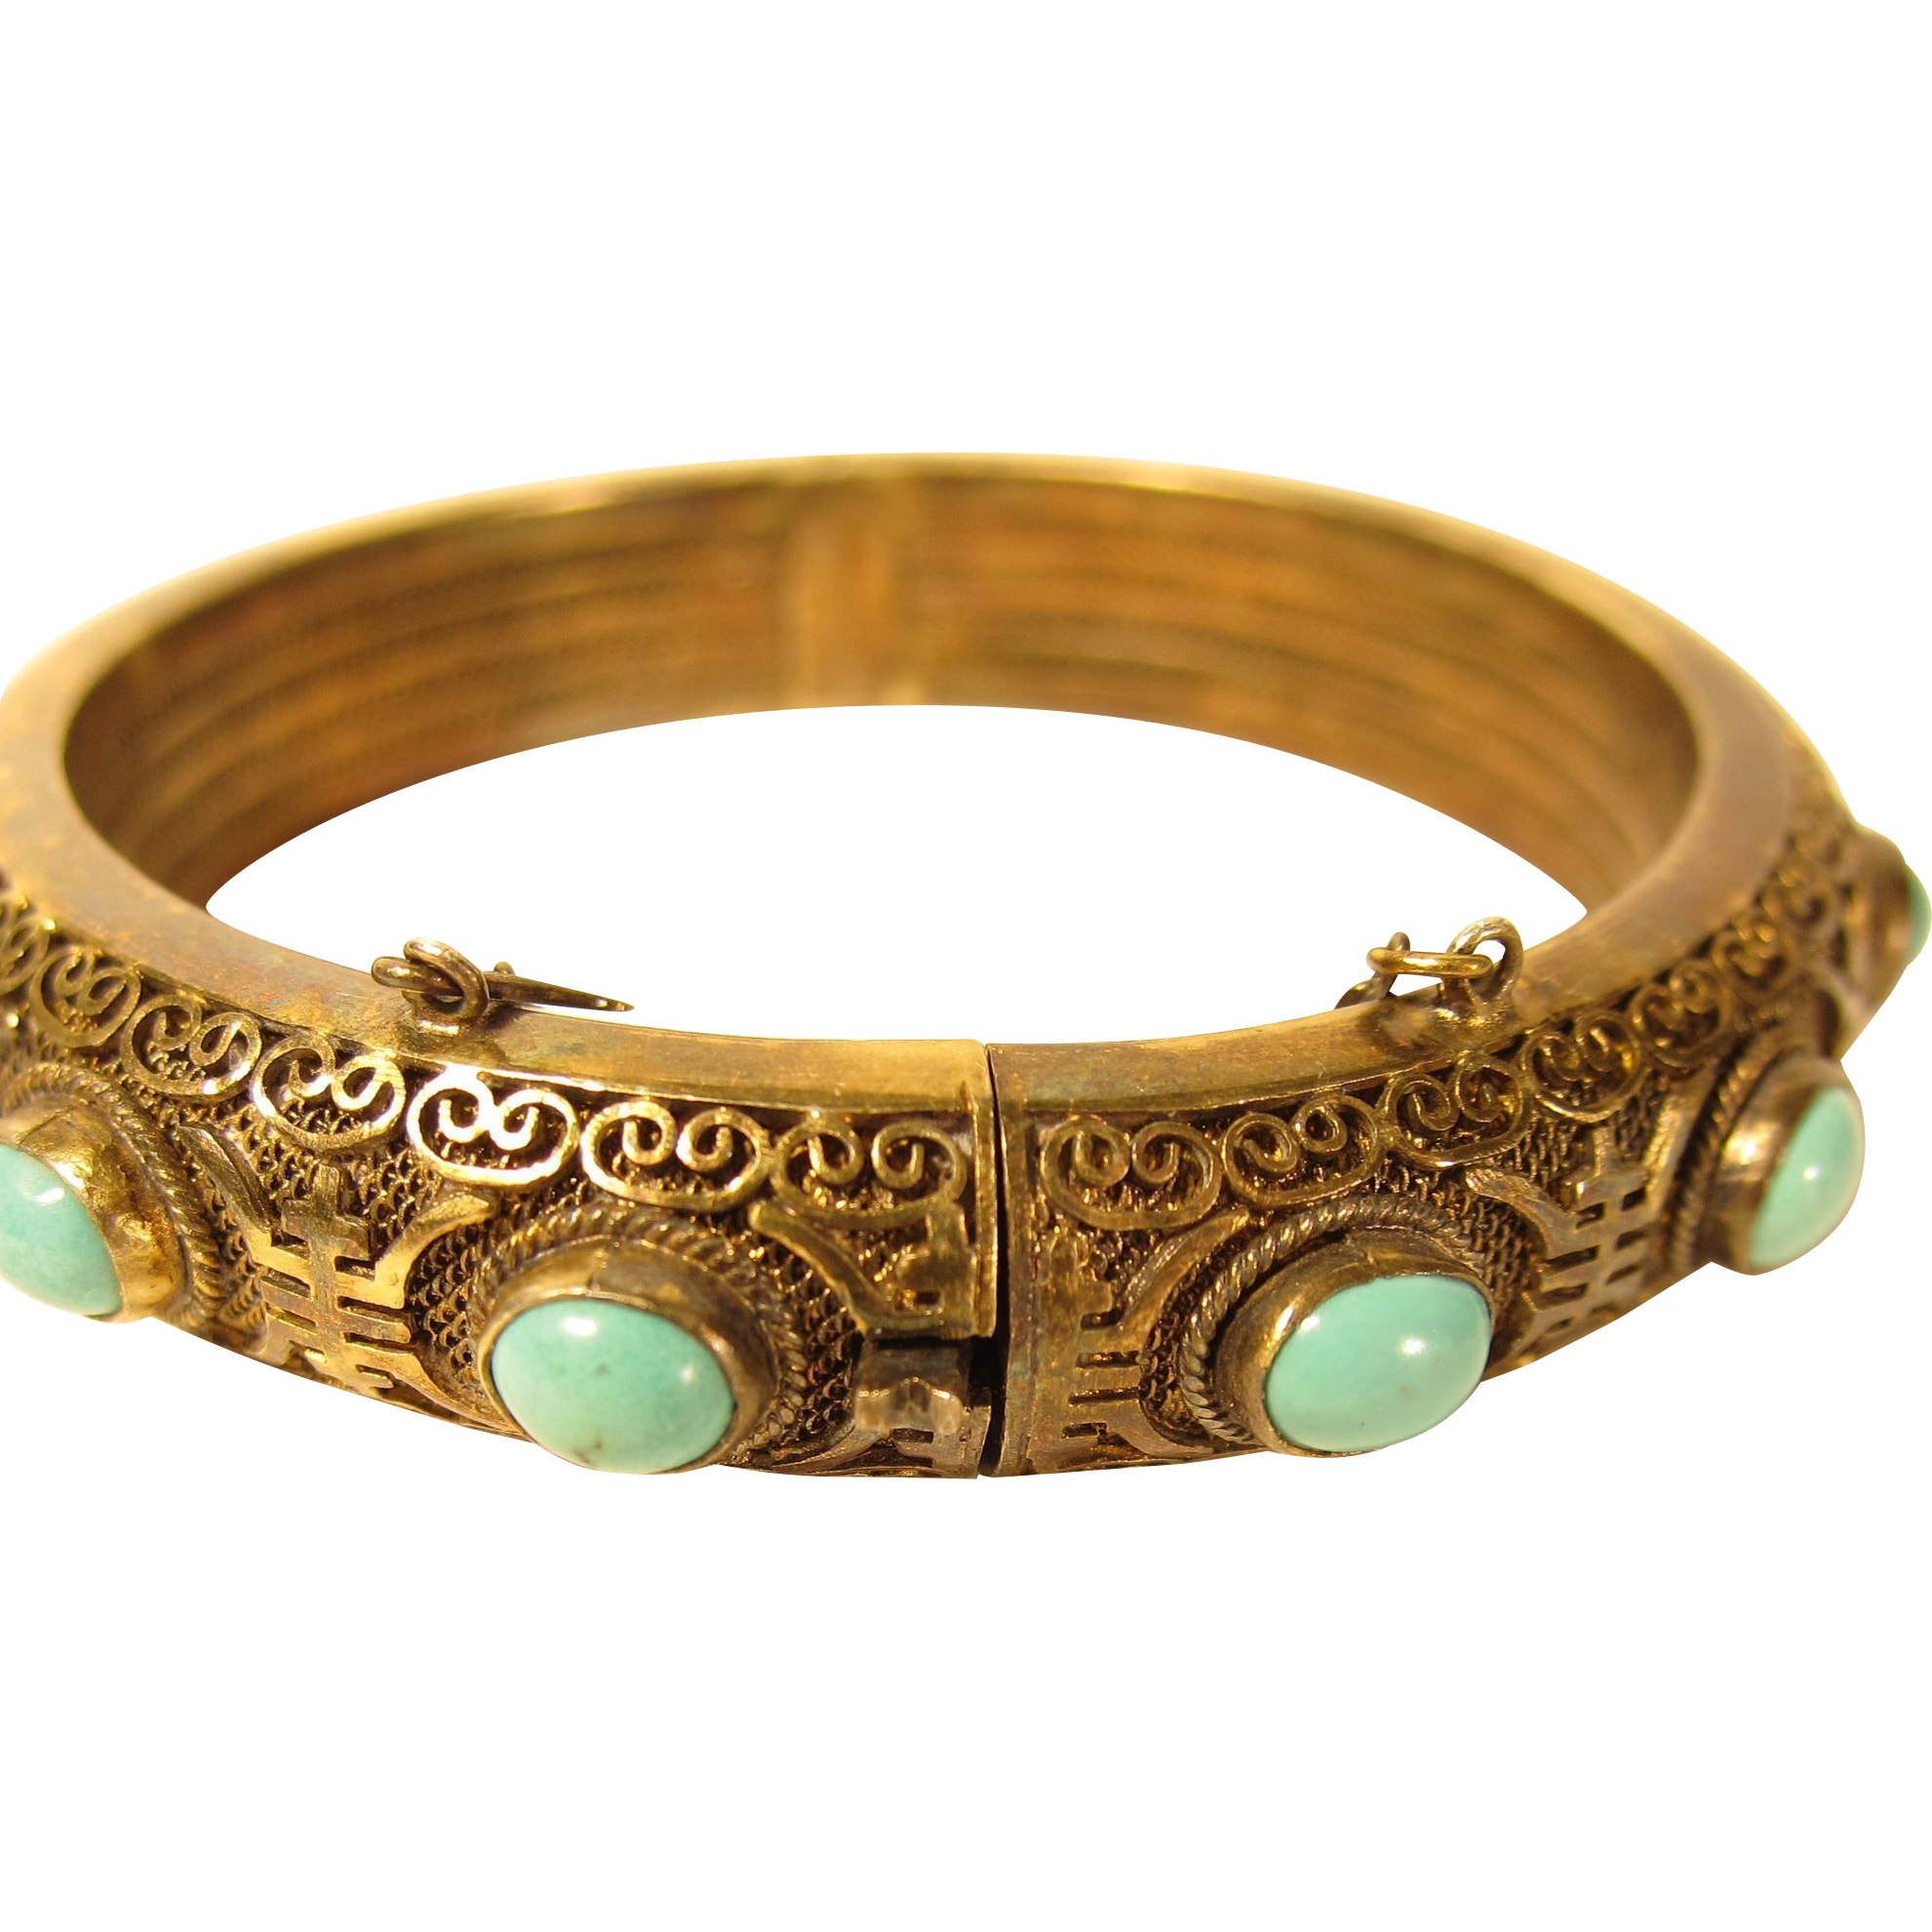 Vintage Chinese Filigree Sterling Silver Vermeil & Turquoise Hinged Bangle